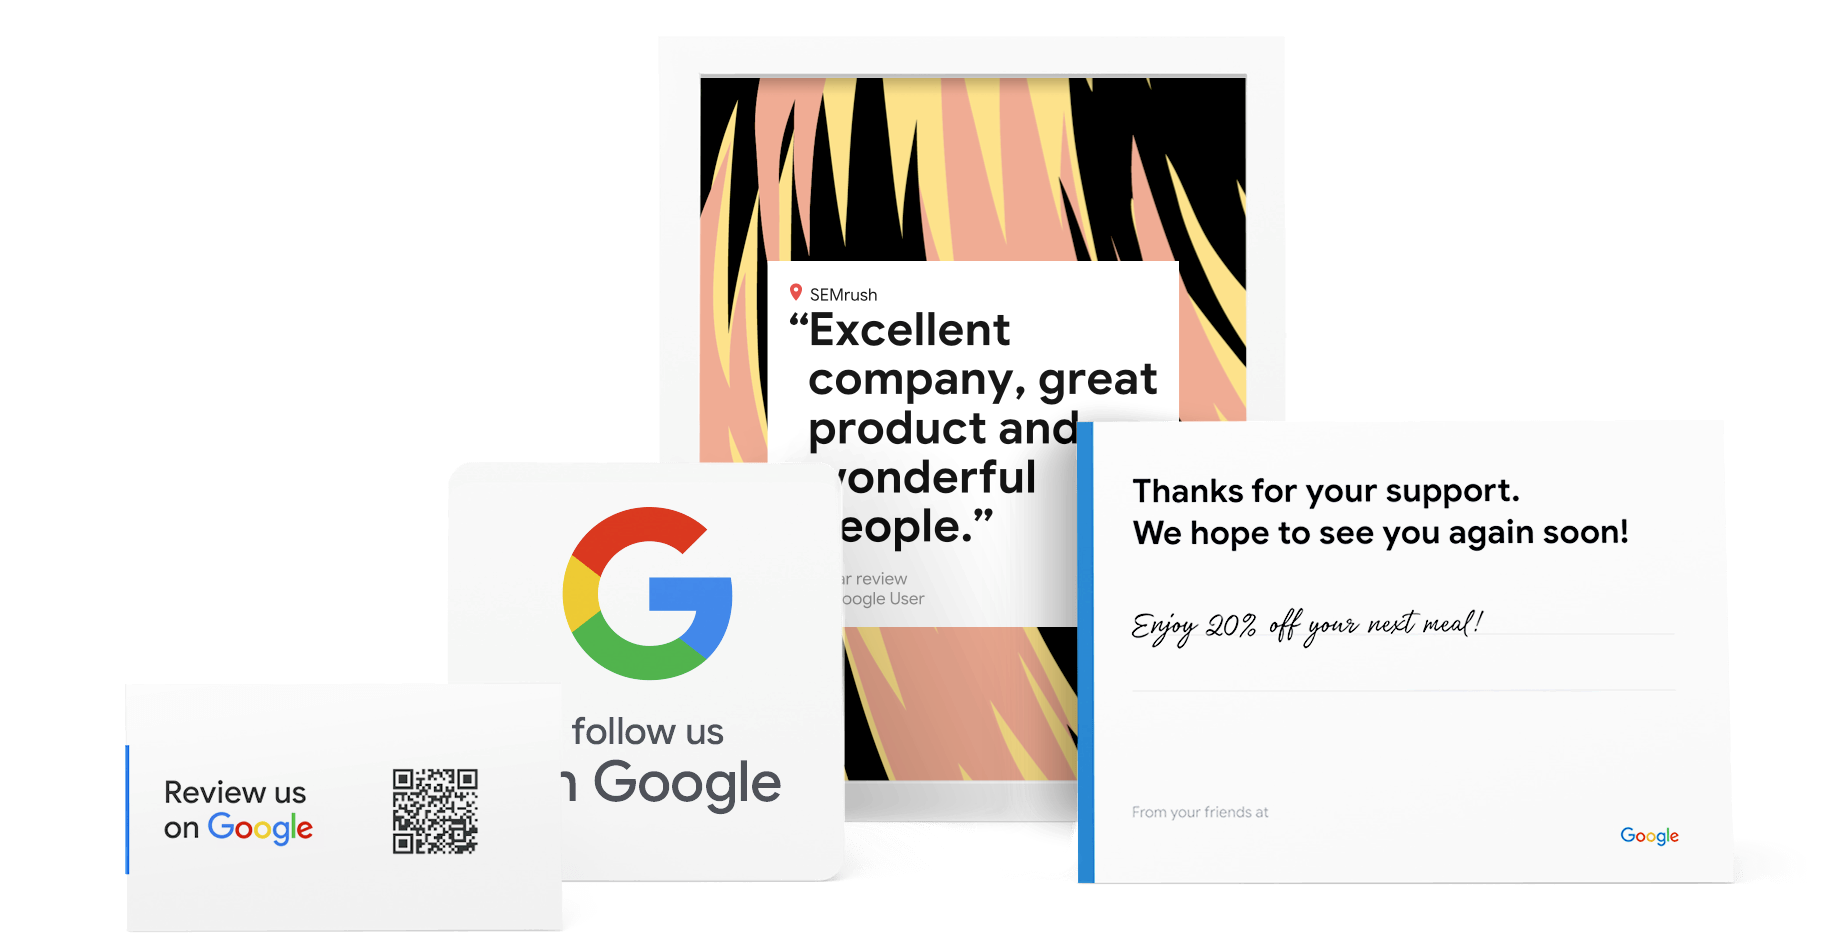 Example of free Google marketing materials